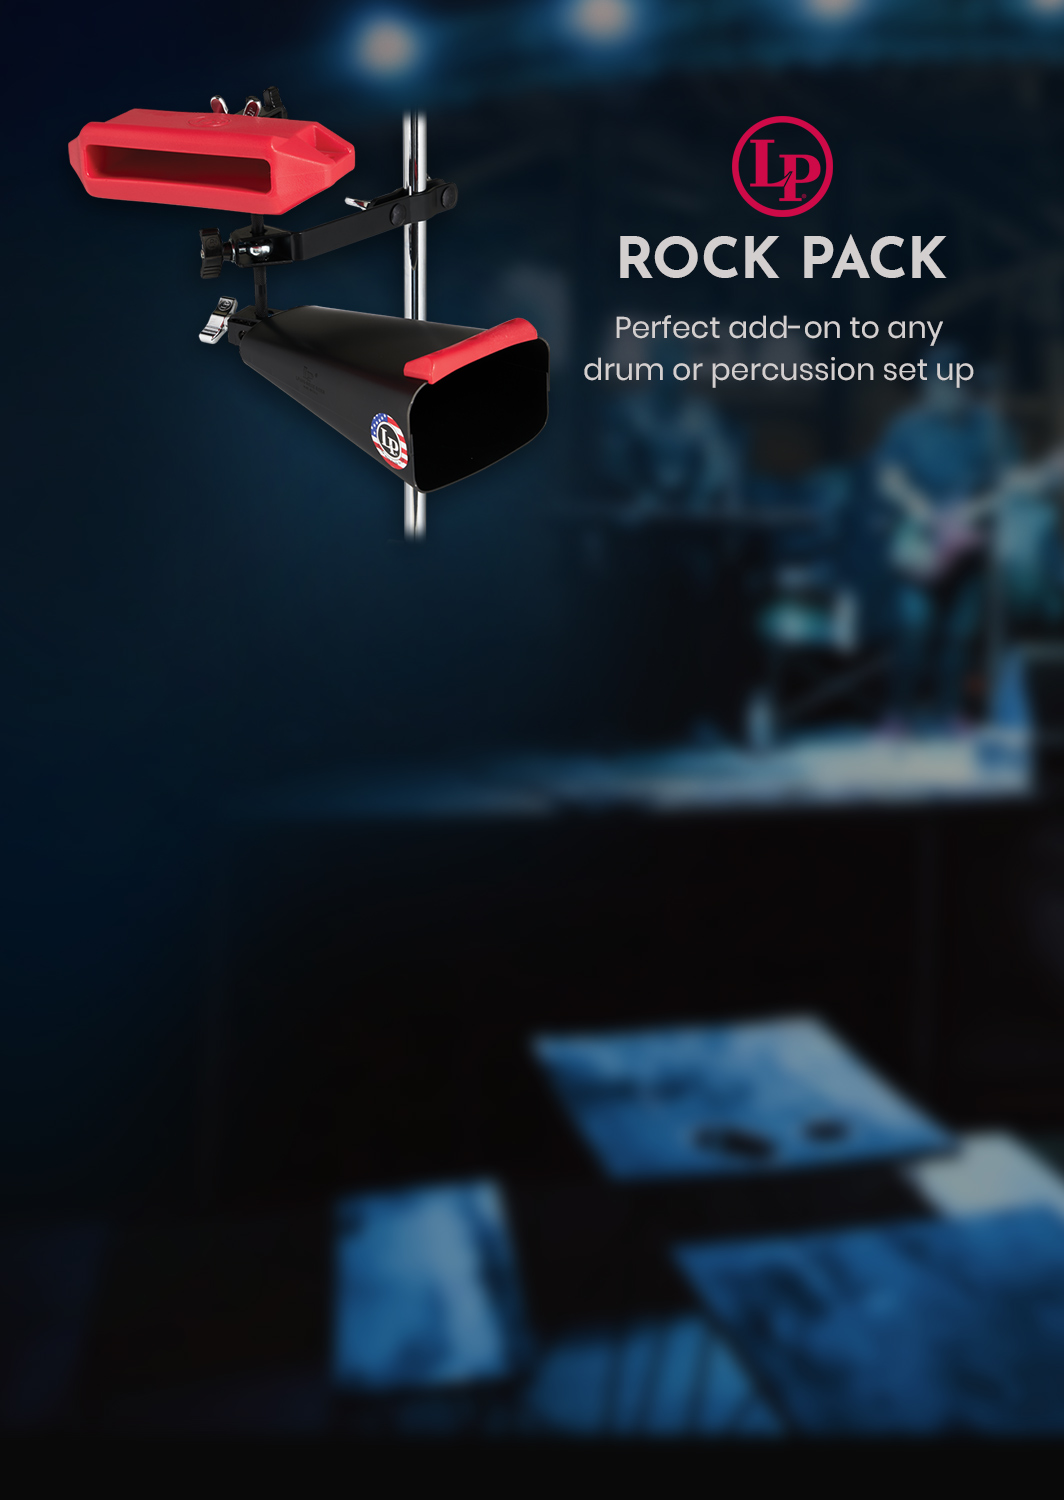 LP Rock Pack